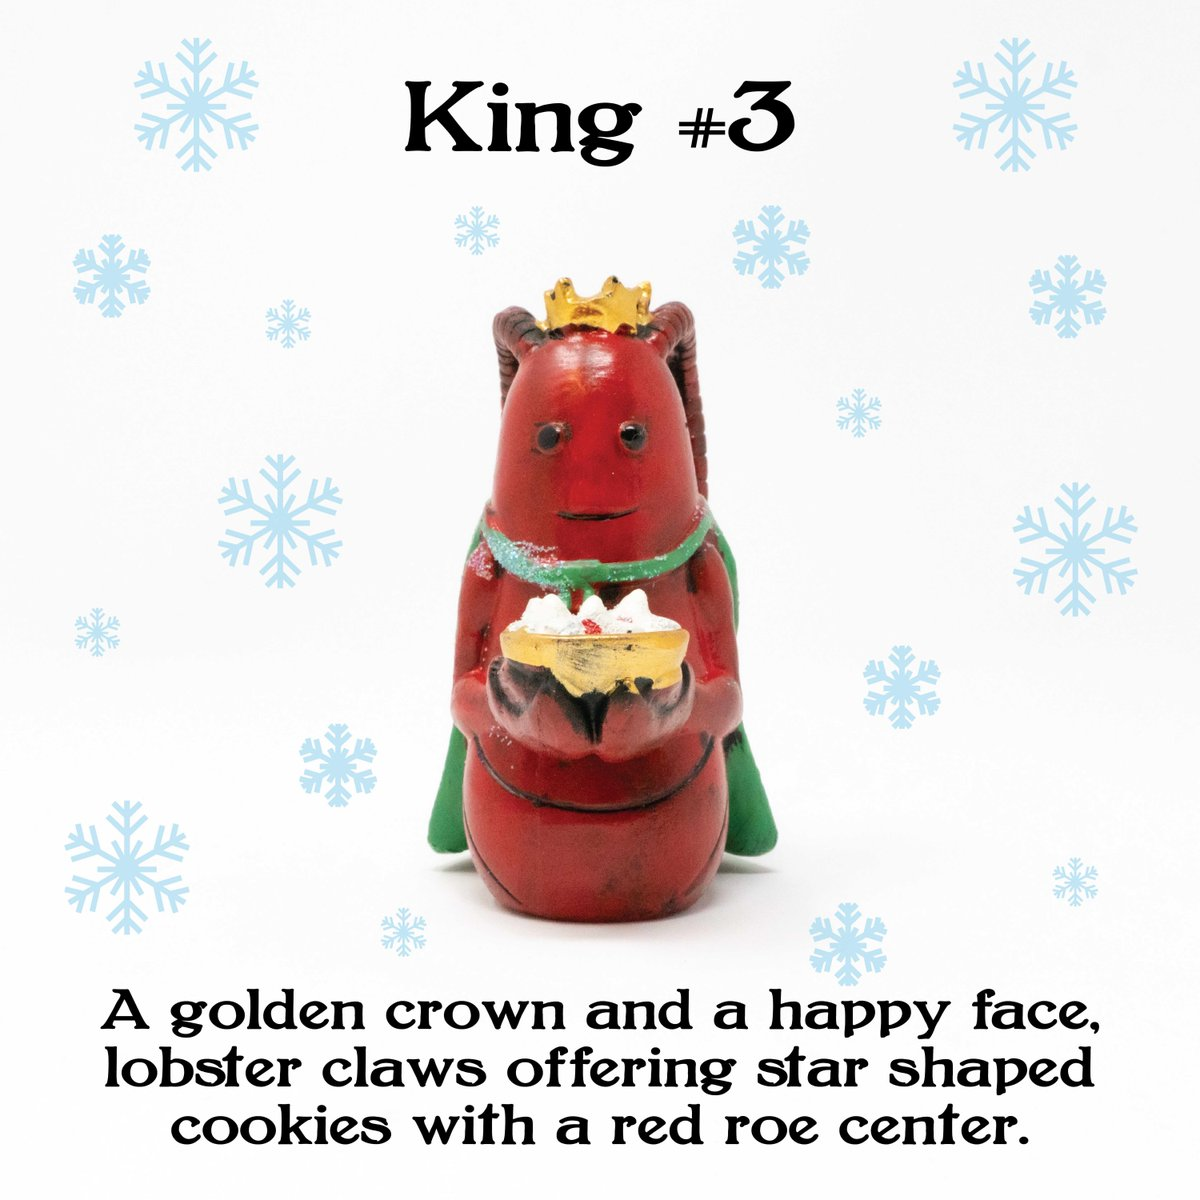 Who doesn't love cookies? The 3rd King brings star shaped sweets in celebration of Jesus's birth  . . . . #christmastime #lobsternativityscene #crustacean #figurinespic.twitter.com/9oc2Szd68l